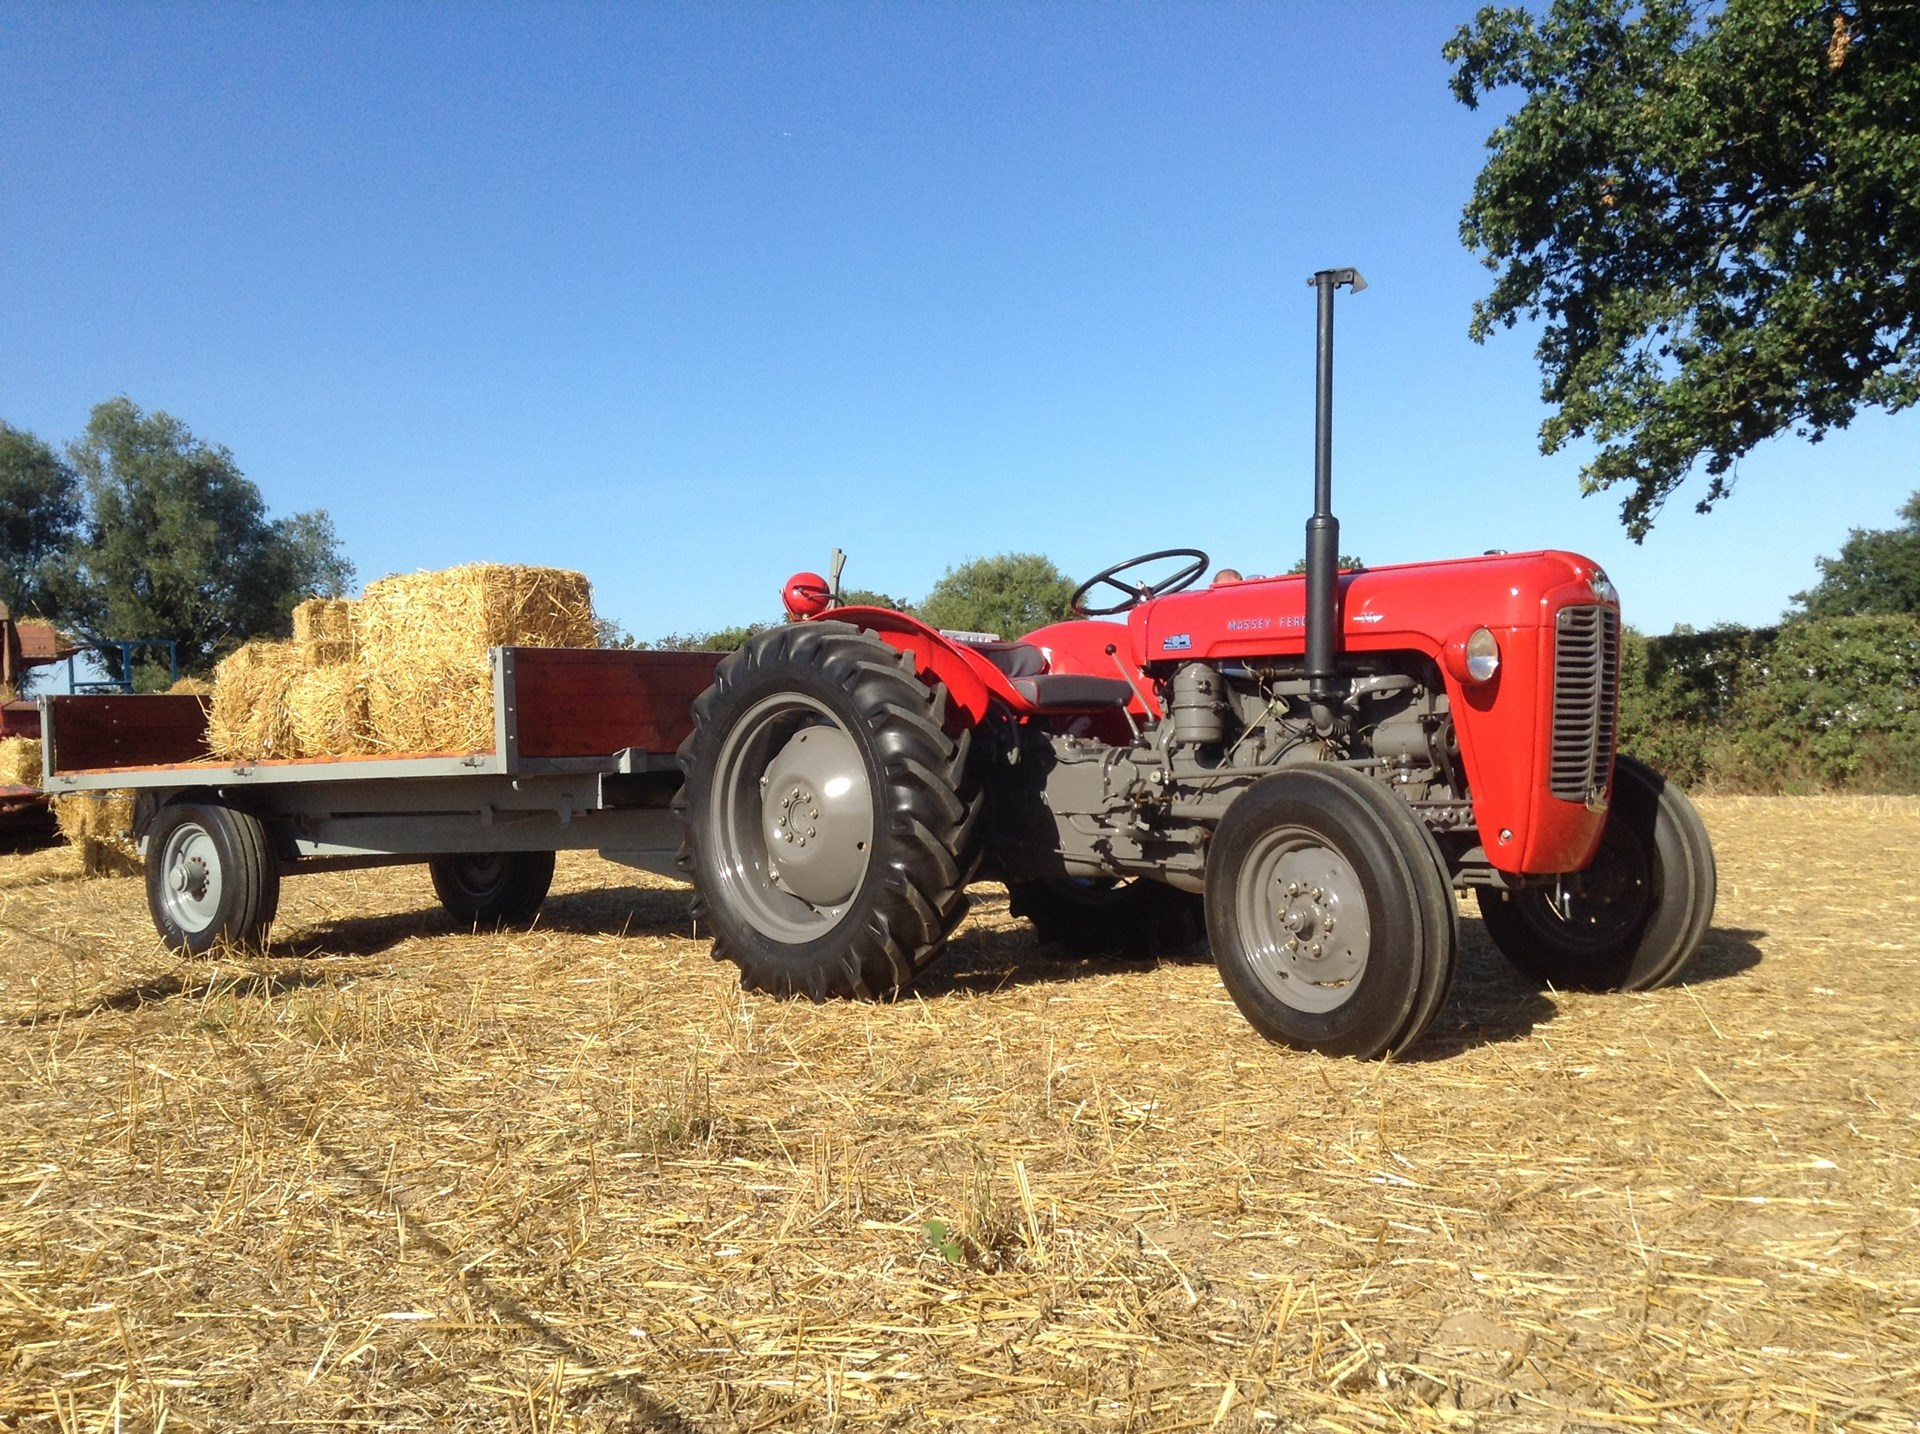 1959 Massey Ferguson tractor and trailer